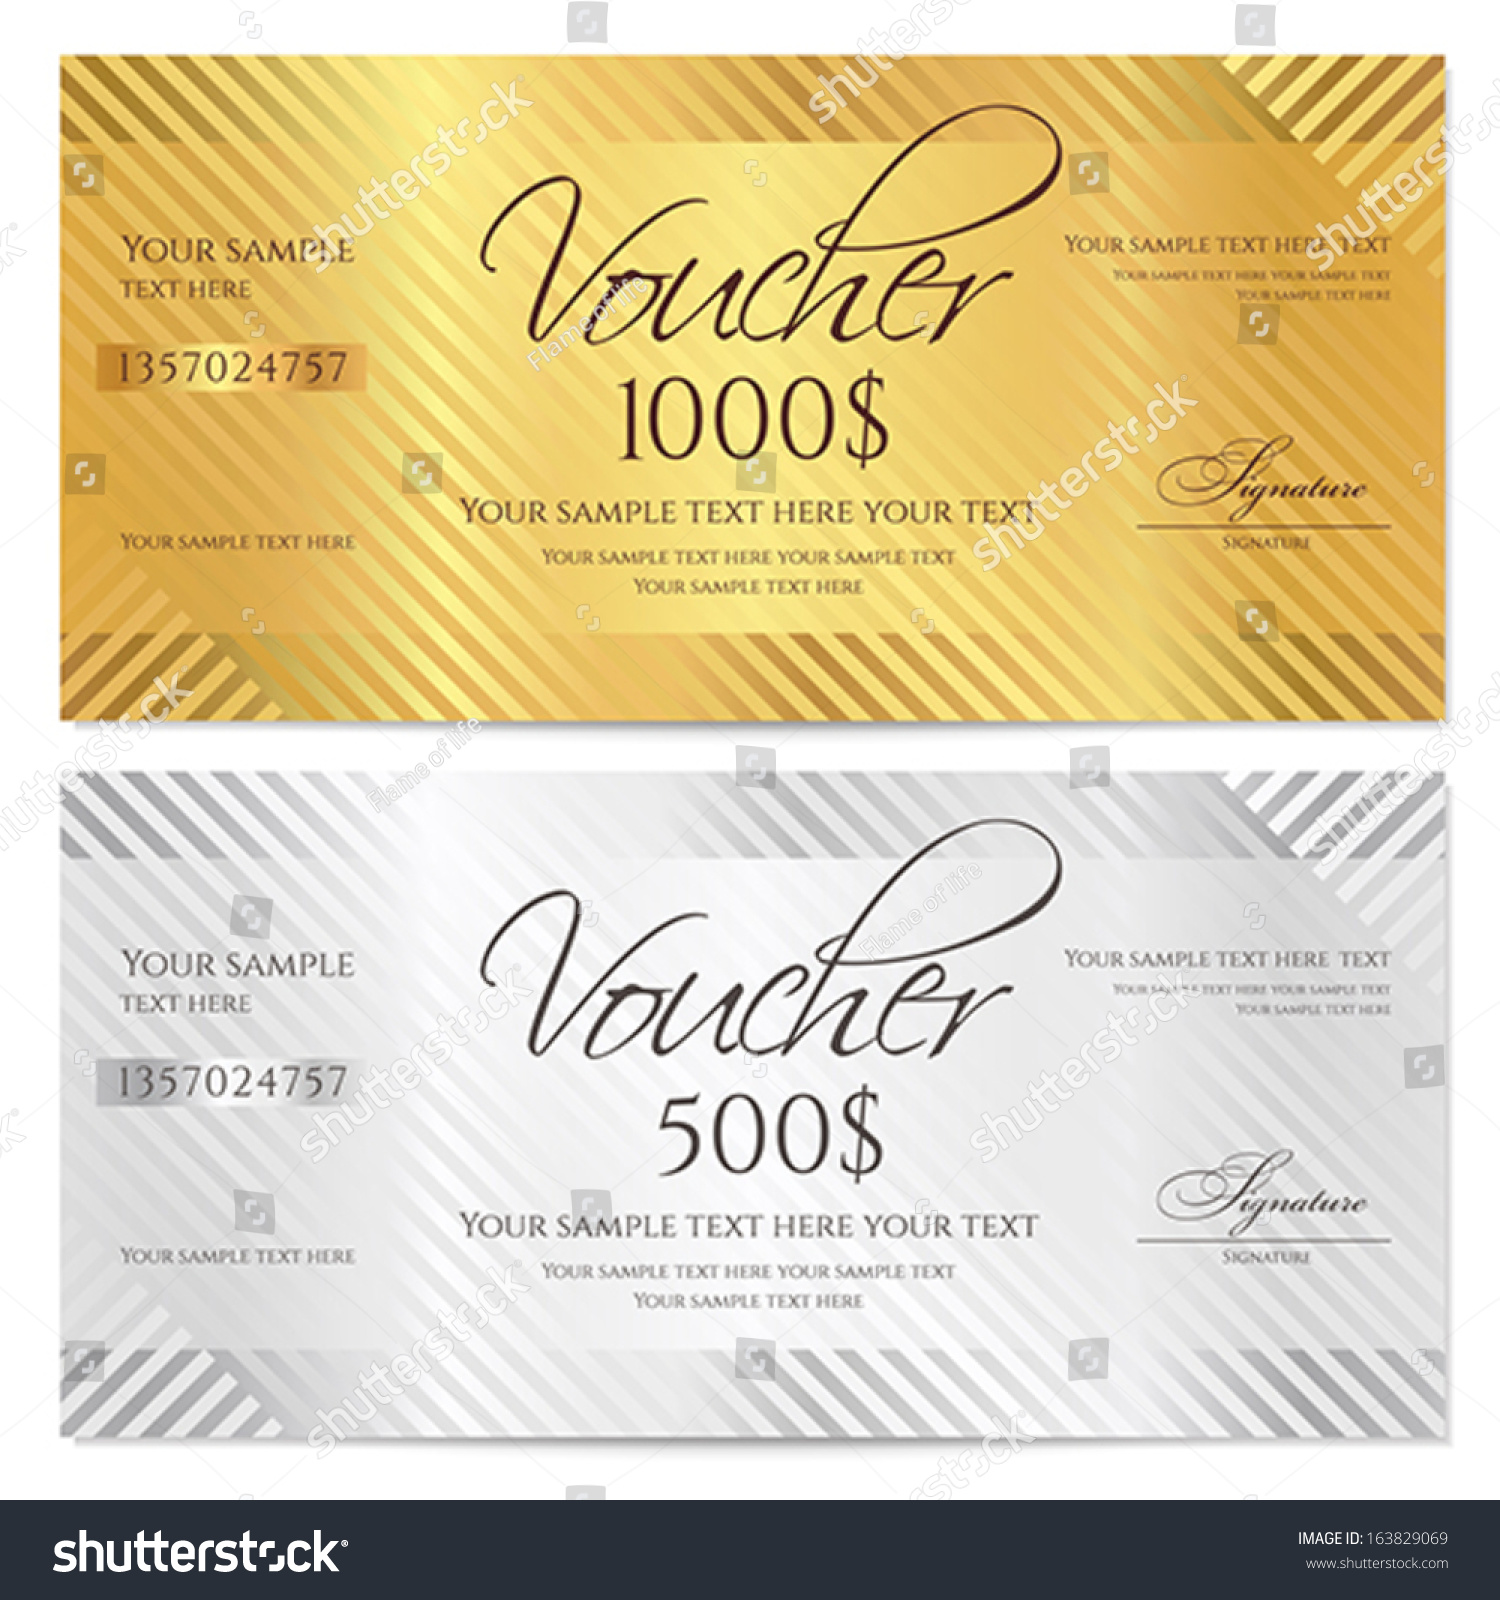 voucher gift certificate coupon template stripe stock vector voucher gift certificate coupon template stripe pattern gold and silver background for